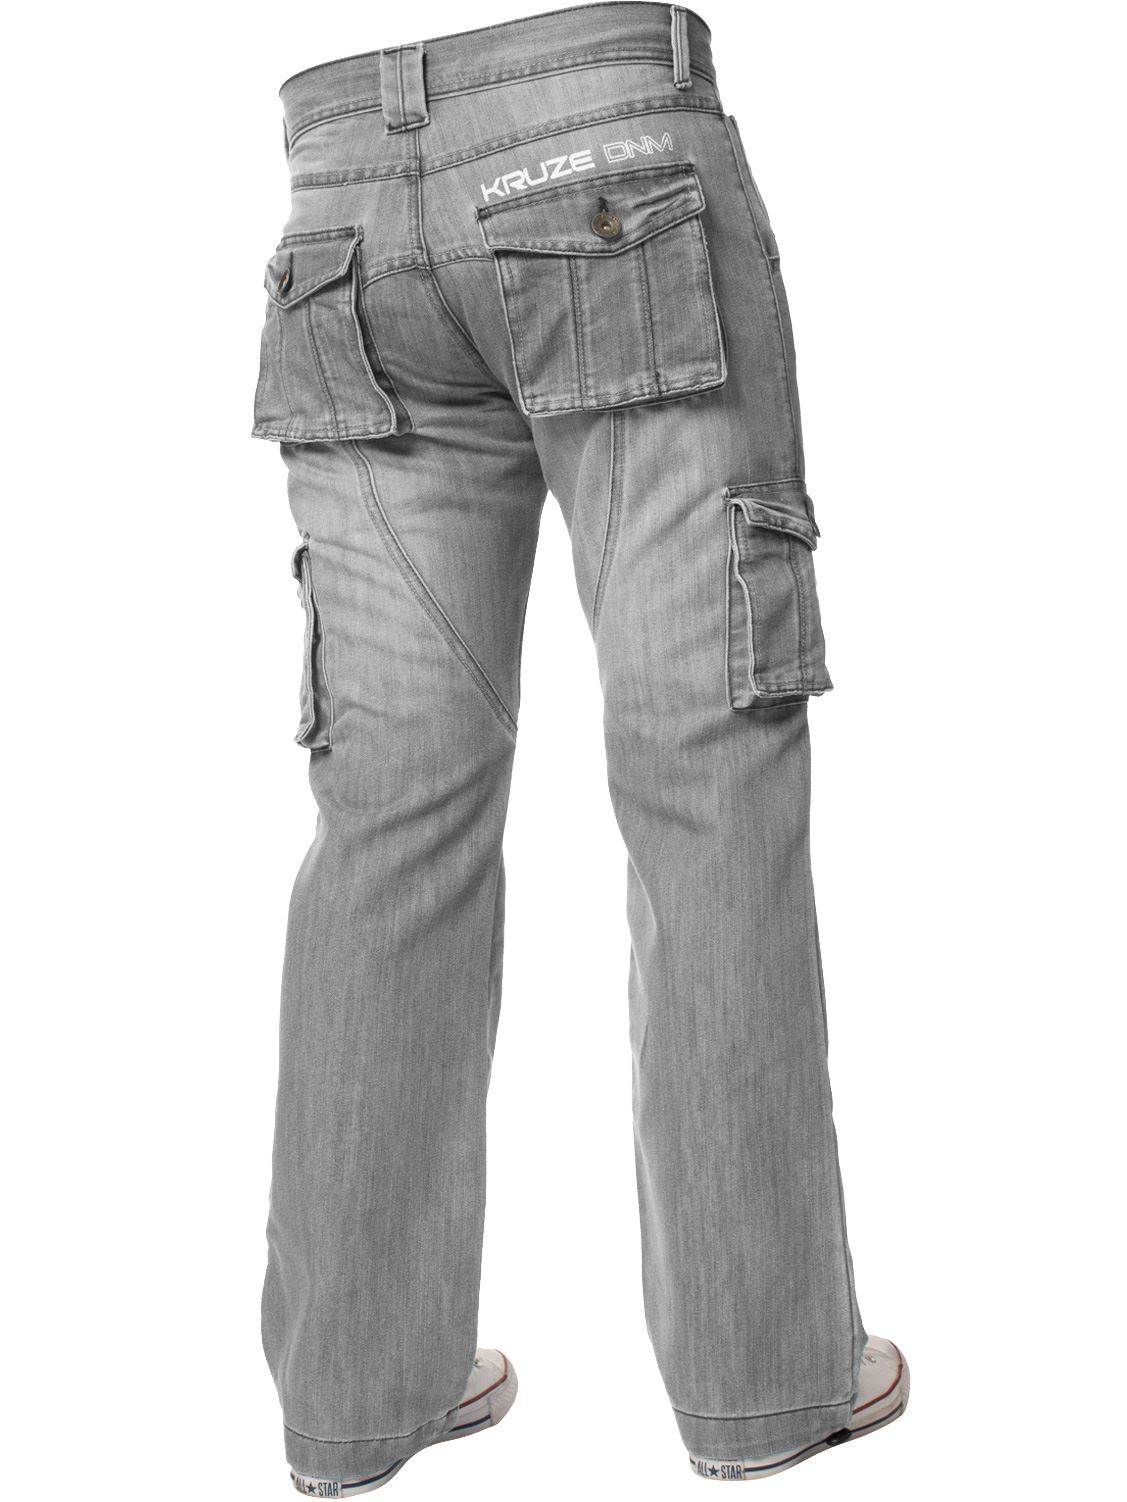 Mens-Cargo-Combat-Trousers-Jeans-Heavy-Duty-Work-Casual-Pants-Big-Tall-All-Sizes thumbnail 47